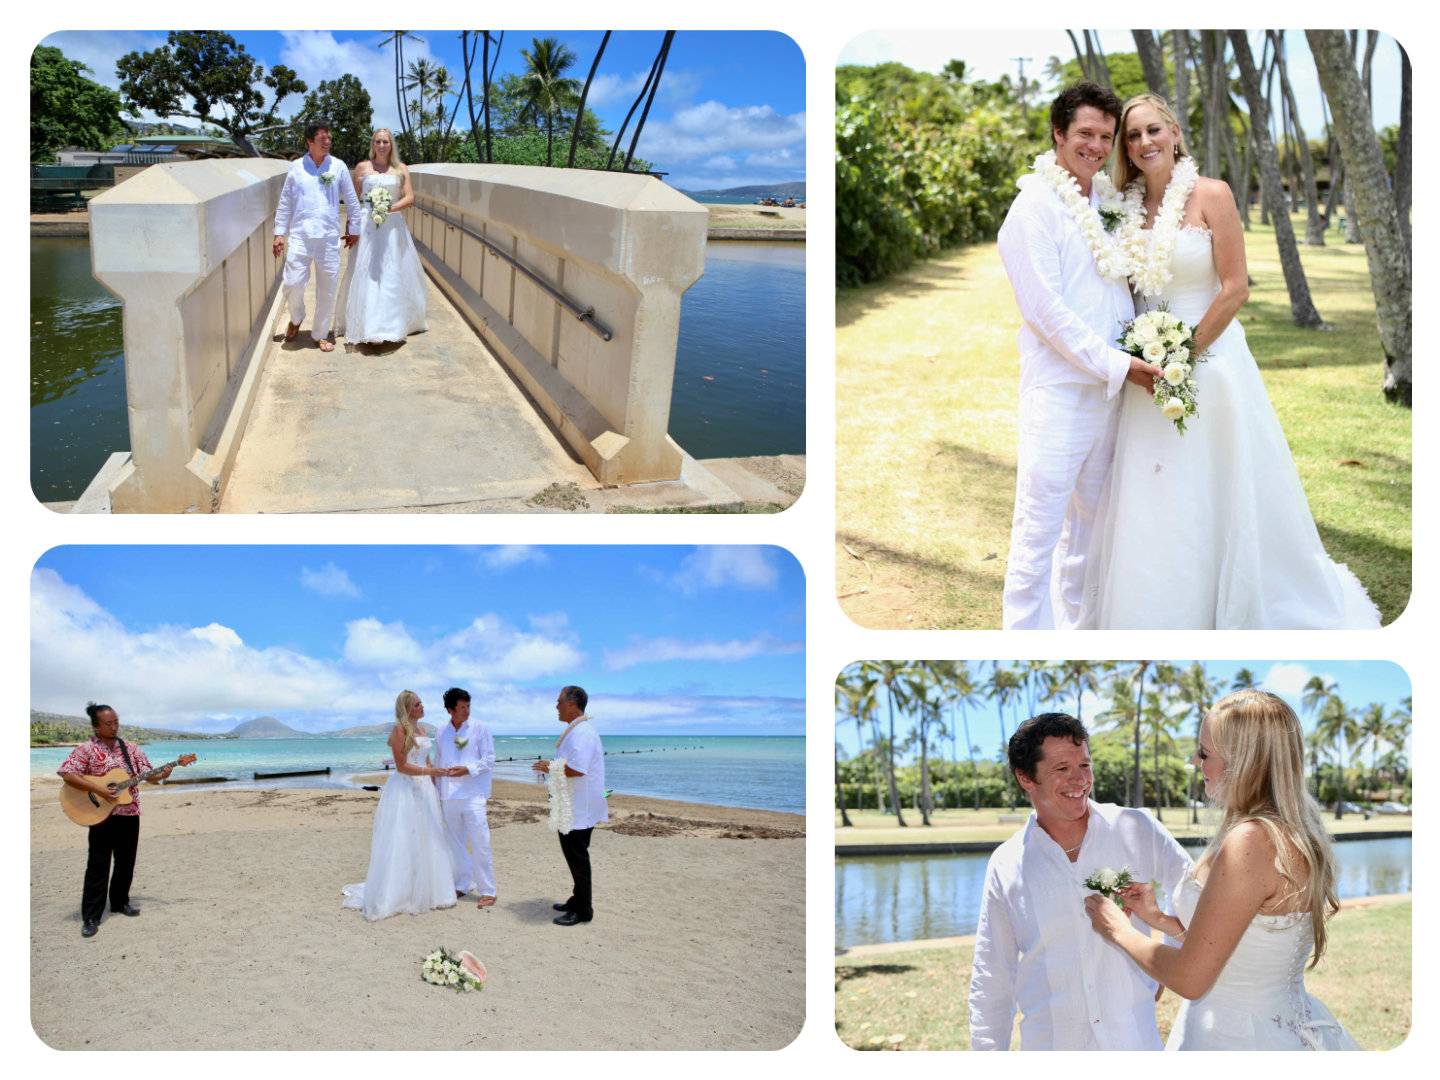 Hawaii weddings vow renewals stories from our professional planners it was memorable and stress free hawaii wedding ceremony for rachel and benjamin on august 18 2018 on the sandy dunes of waialae beach park junglespirit Gallery